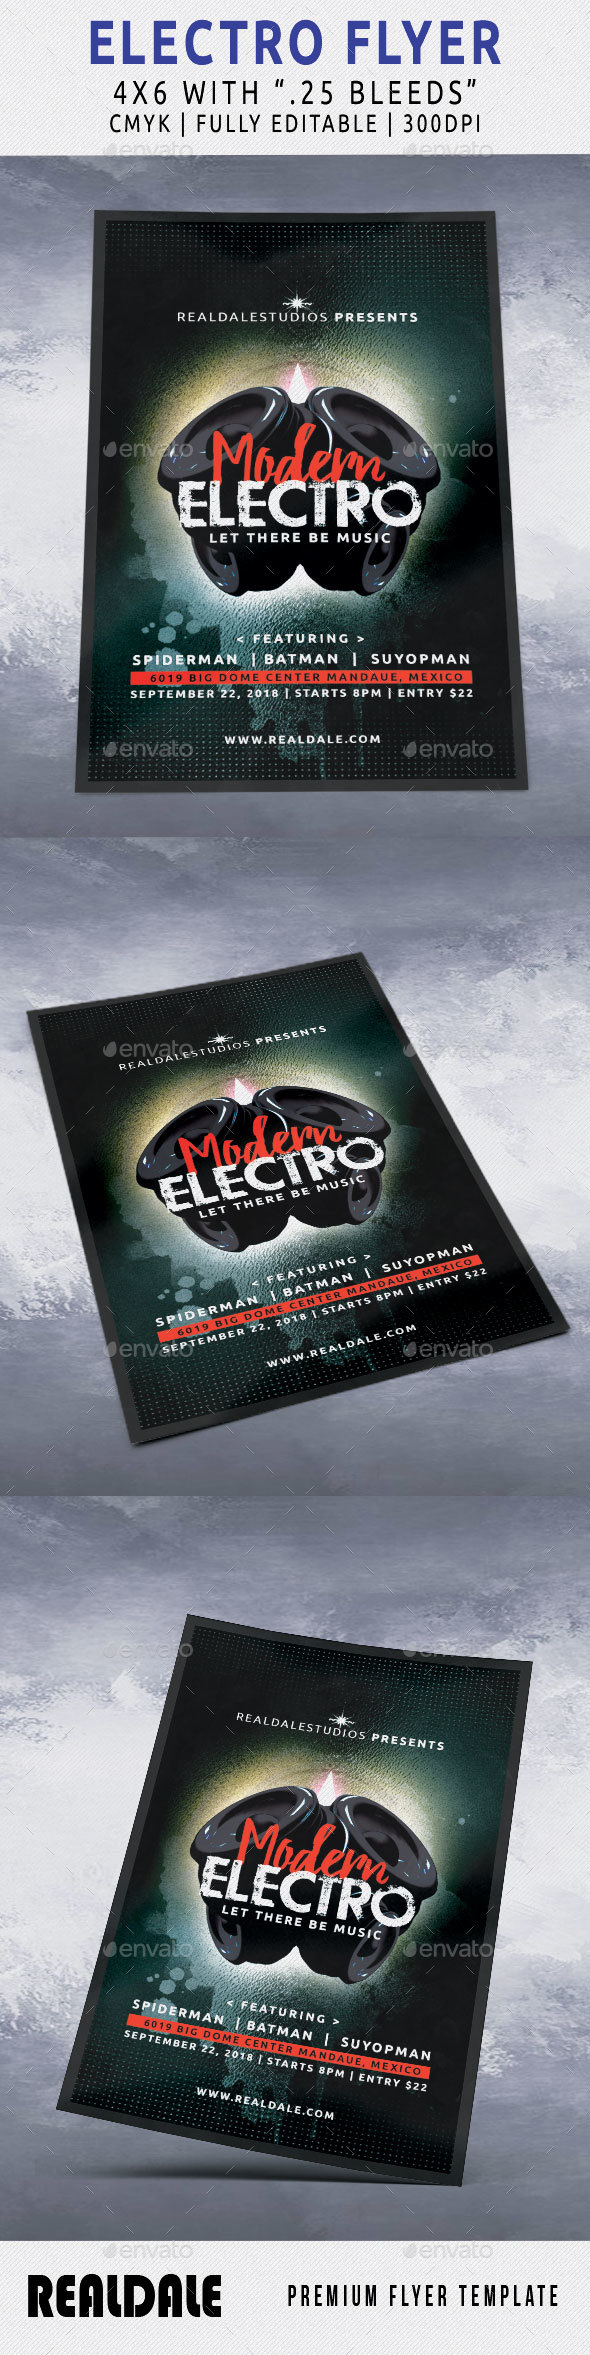 Modern Electro Flyer - Events Flyers